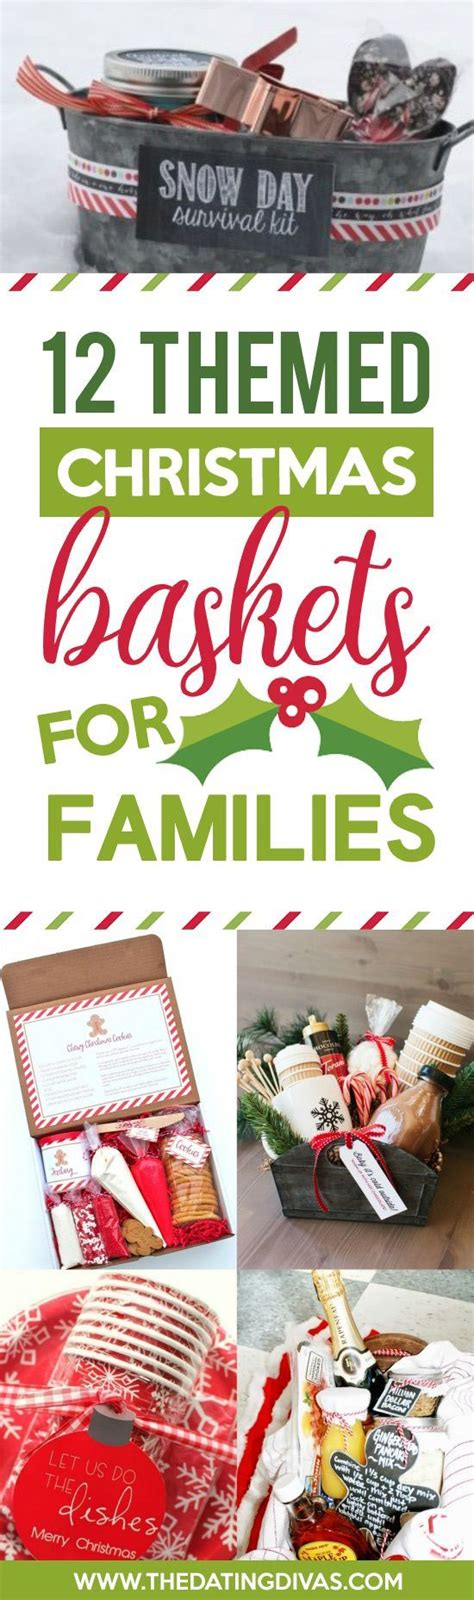 best 25 family gifts ideas on pinterest themed gift